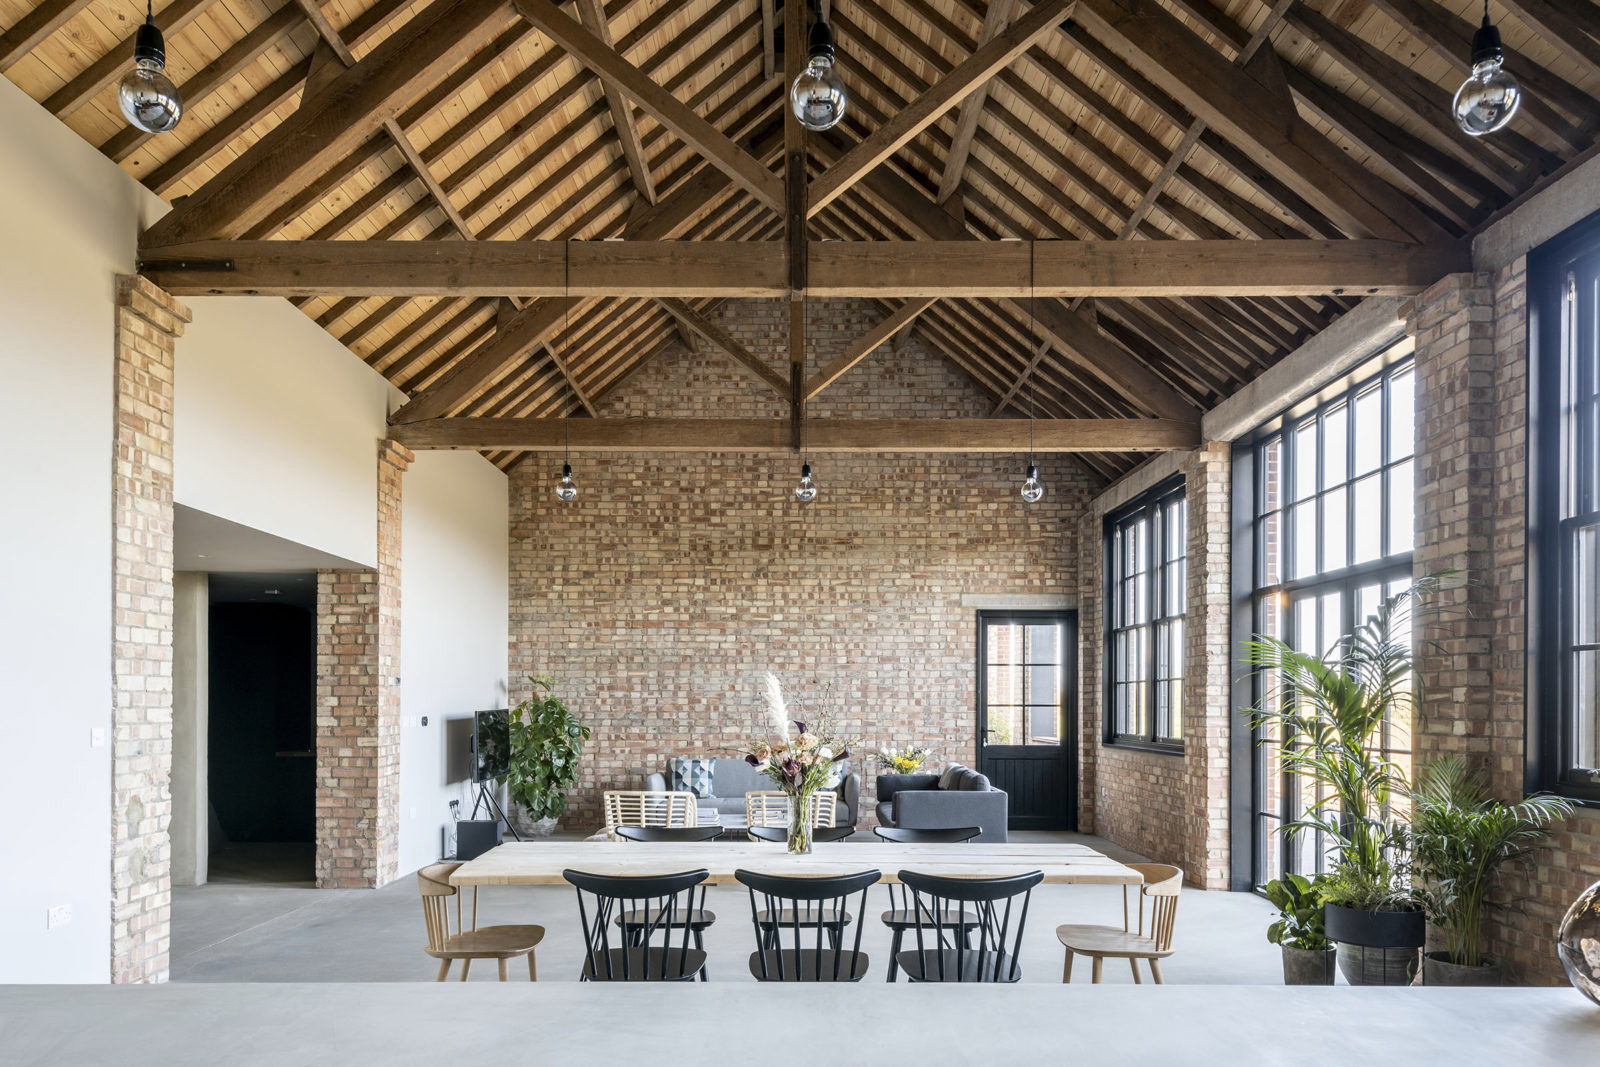 Rustic meets industrial at this £710k barn conversion in Suffolk